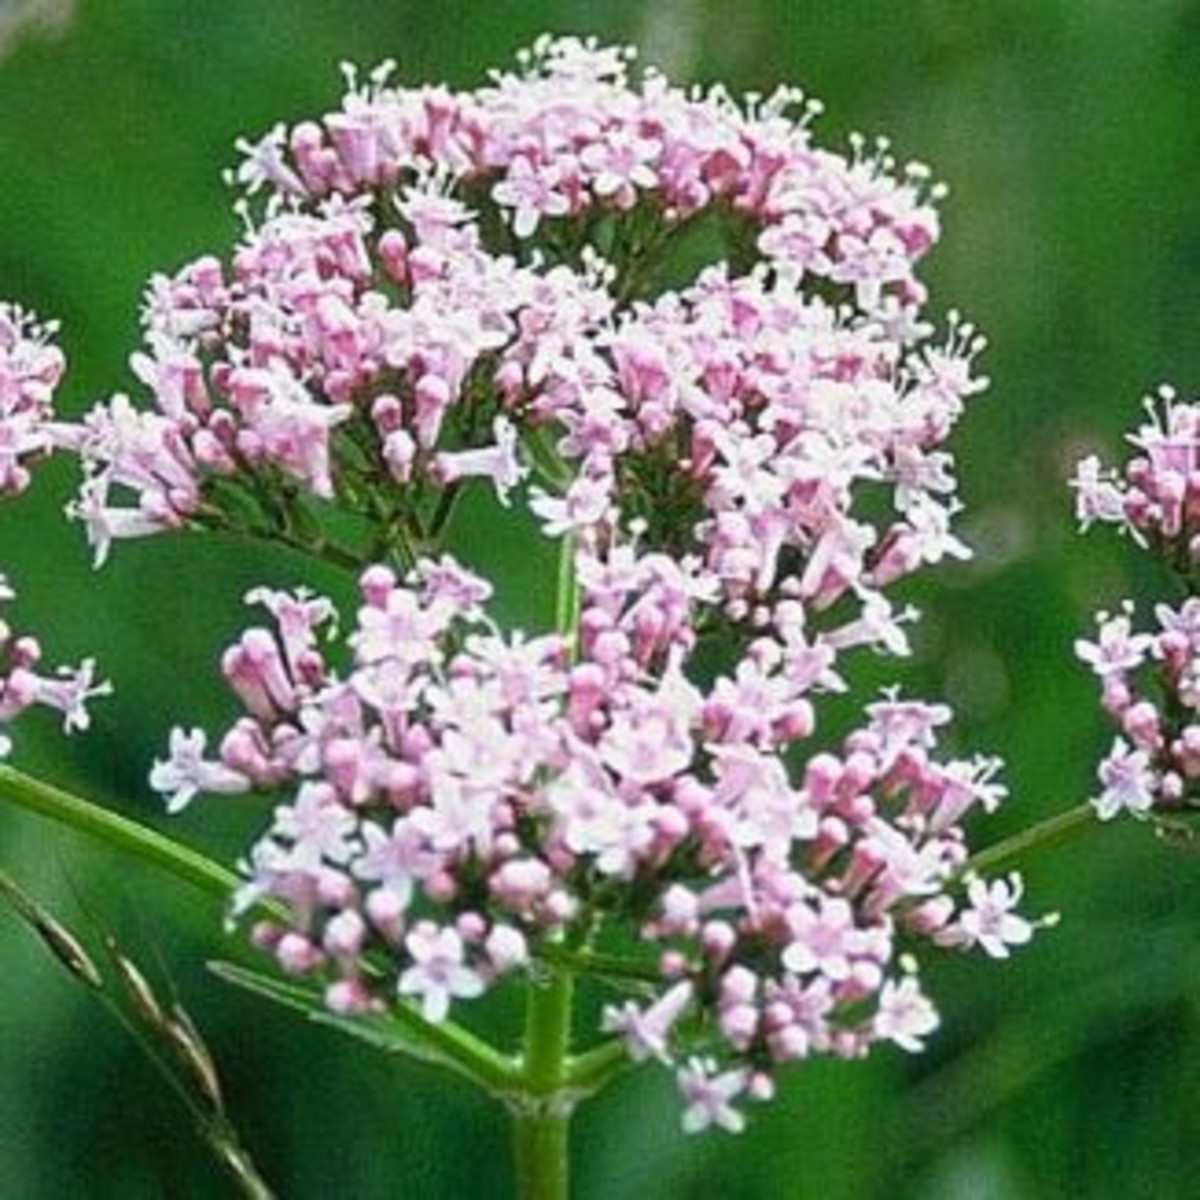 Valeriana officinalis flower